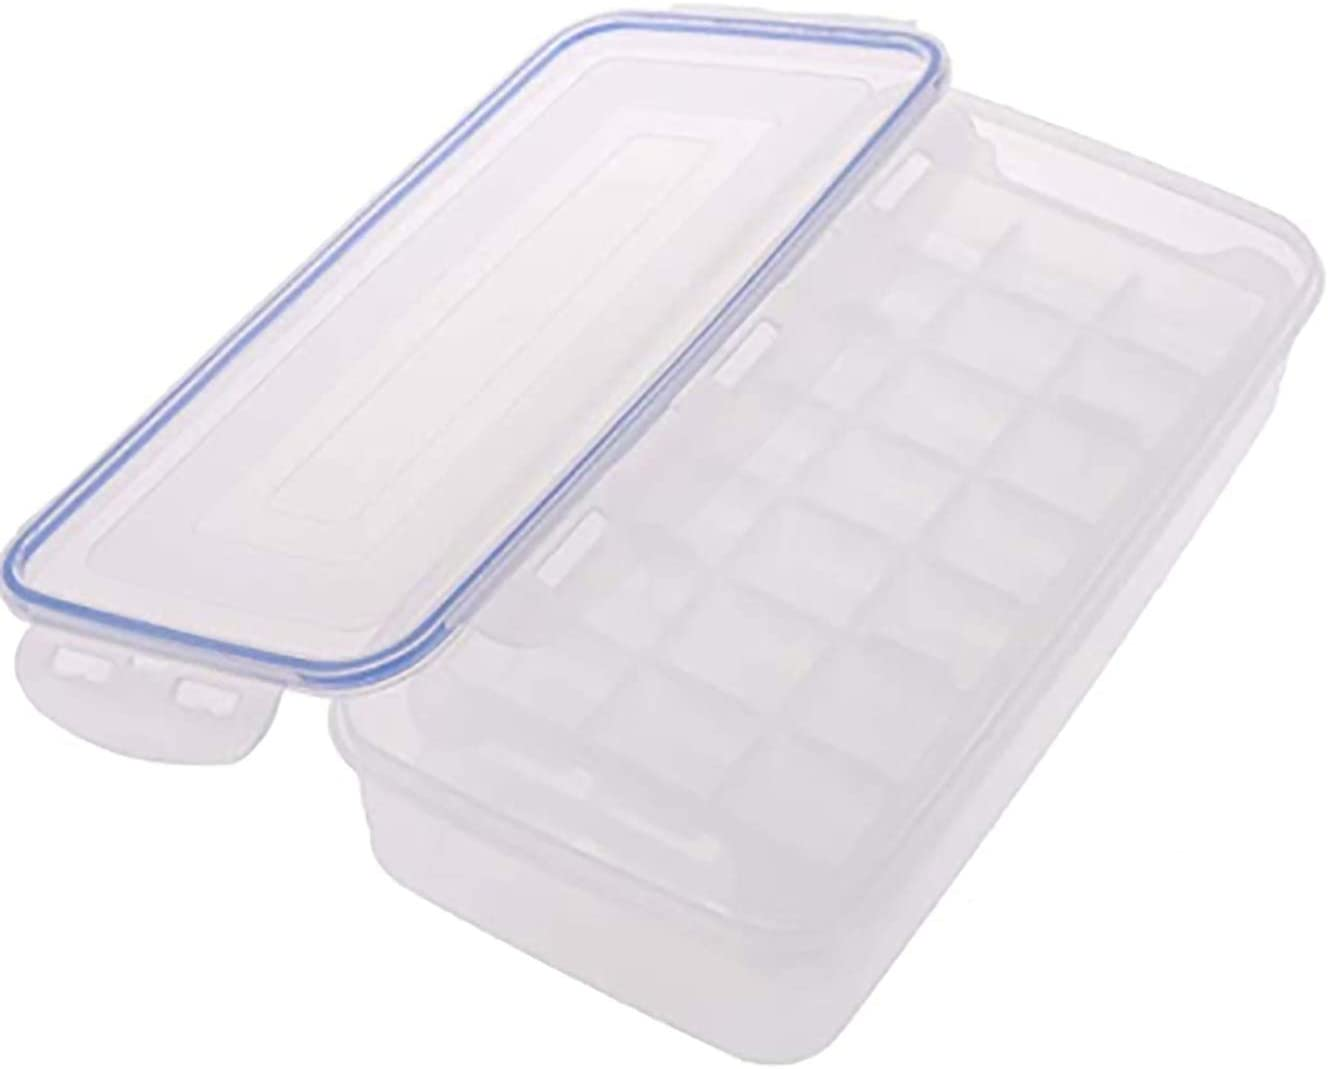 Ice Cube Trays and Ice Cube Storage Container Set with Airtight Locking Lid 2 Packs 42 Trapezoid Stackable Plastic Ice Cubes Mold Makers for Food Freezer Cool Drinking Smoothie 1.7L